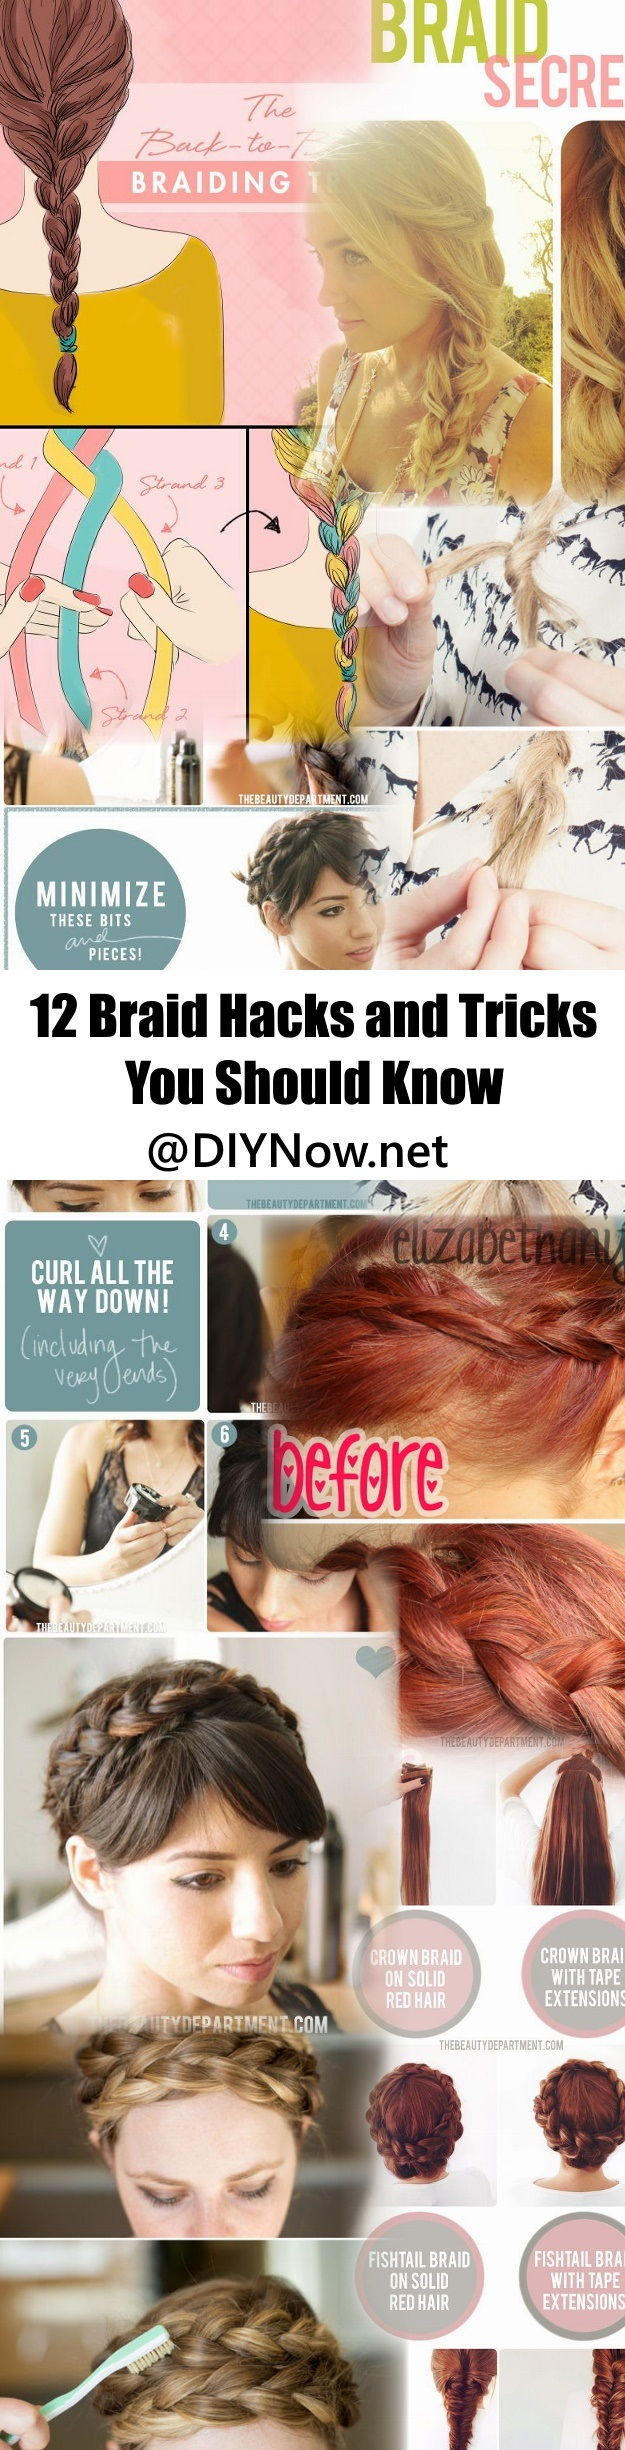 12 Braid Hacks and Tricks You Should Know